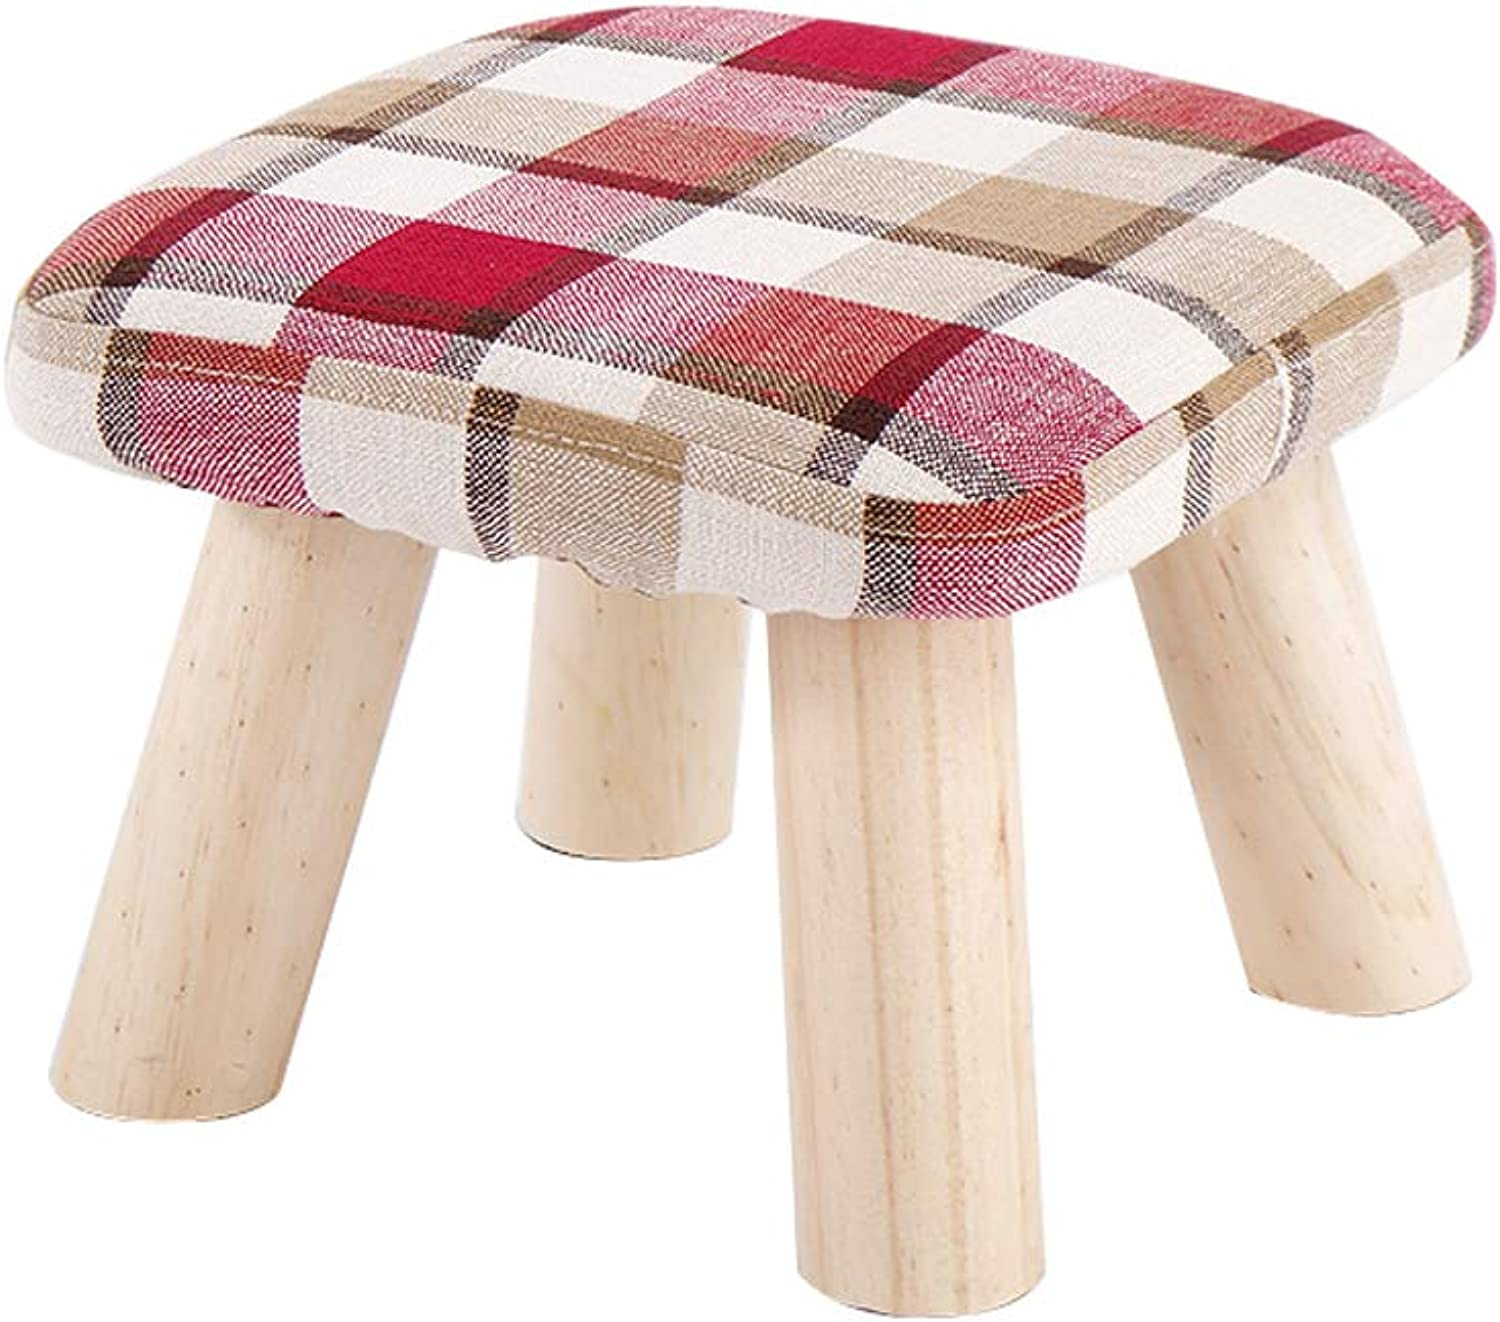 Small Stool Solid Wood Coffee Table Sofa Stool Fabric Small Bench Stool Fashion Creative shoes shoes Bench (Size   28  28  28cm)